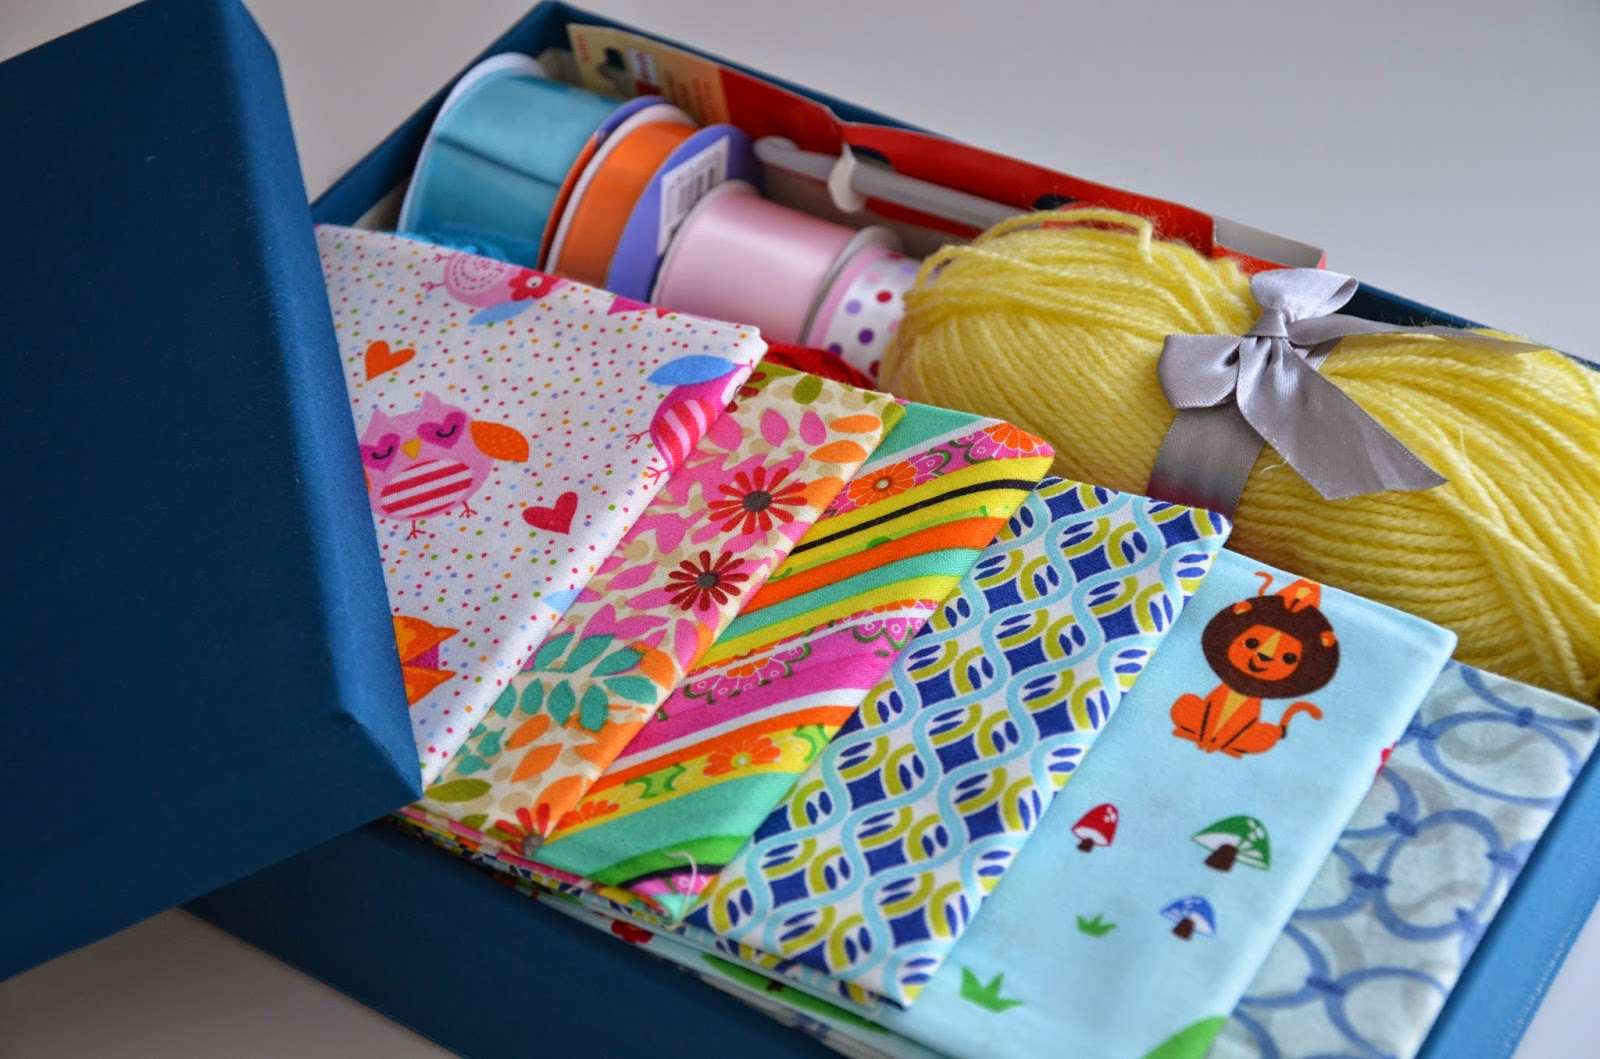 Knitting and sewing gifts